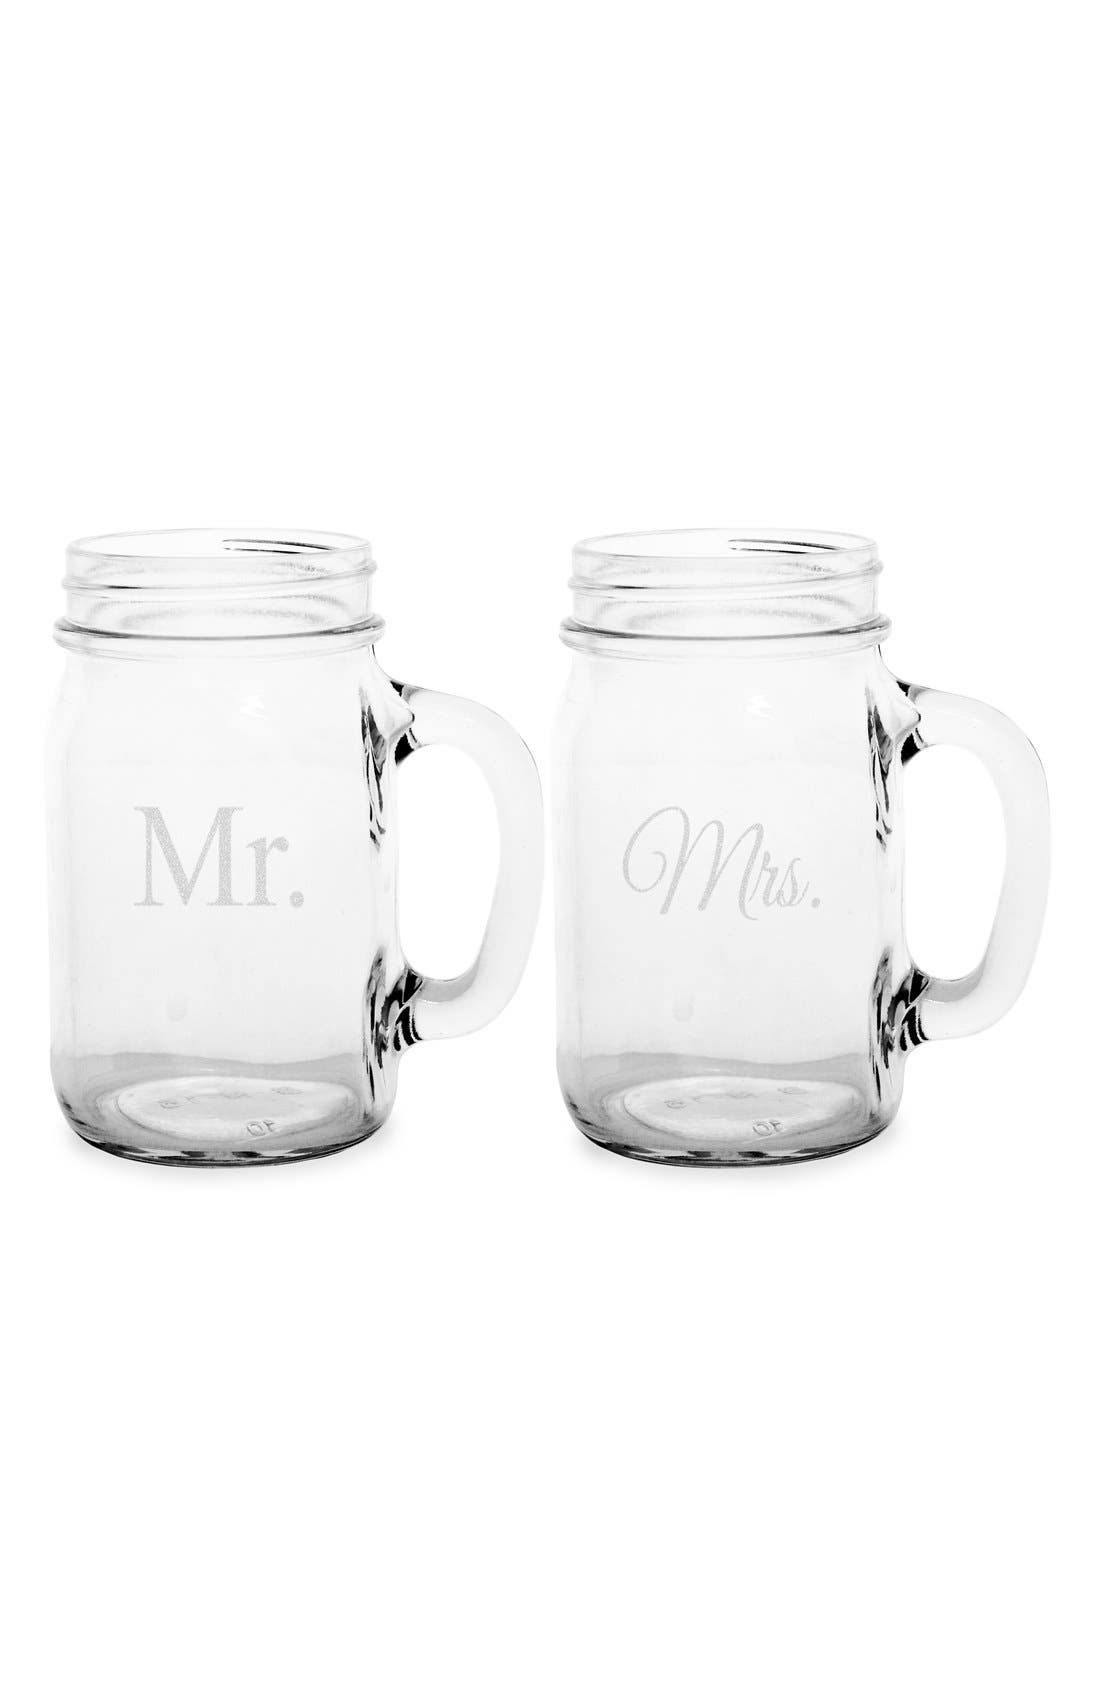 'For The Couple' Mason Jar Glasses with Handles,                             Alternate thumbnail 2, color,                             100